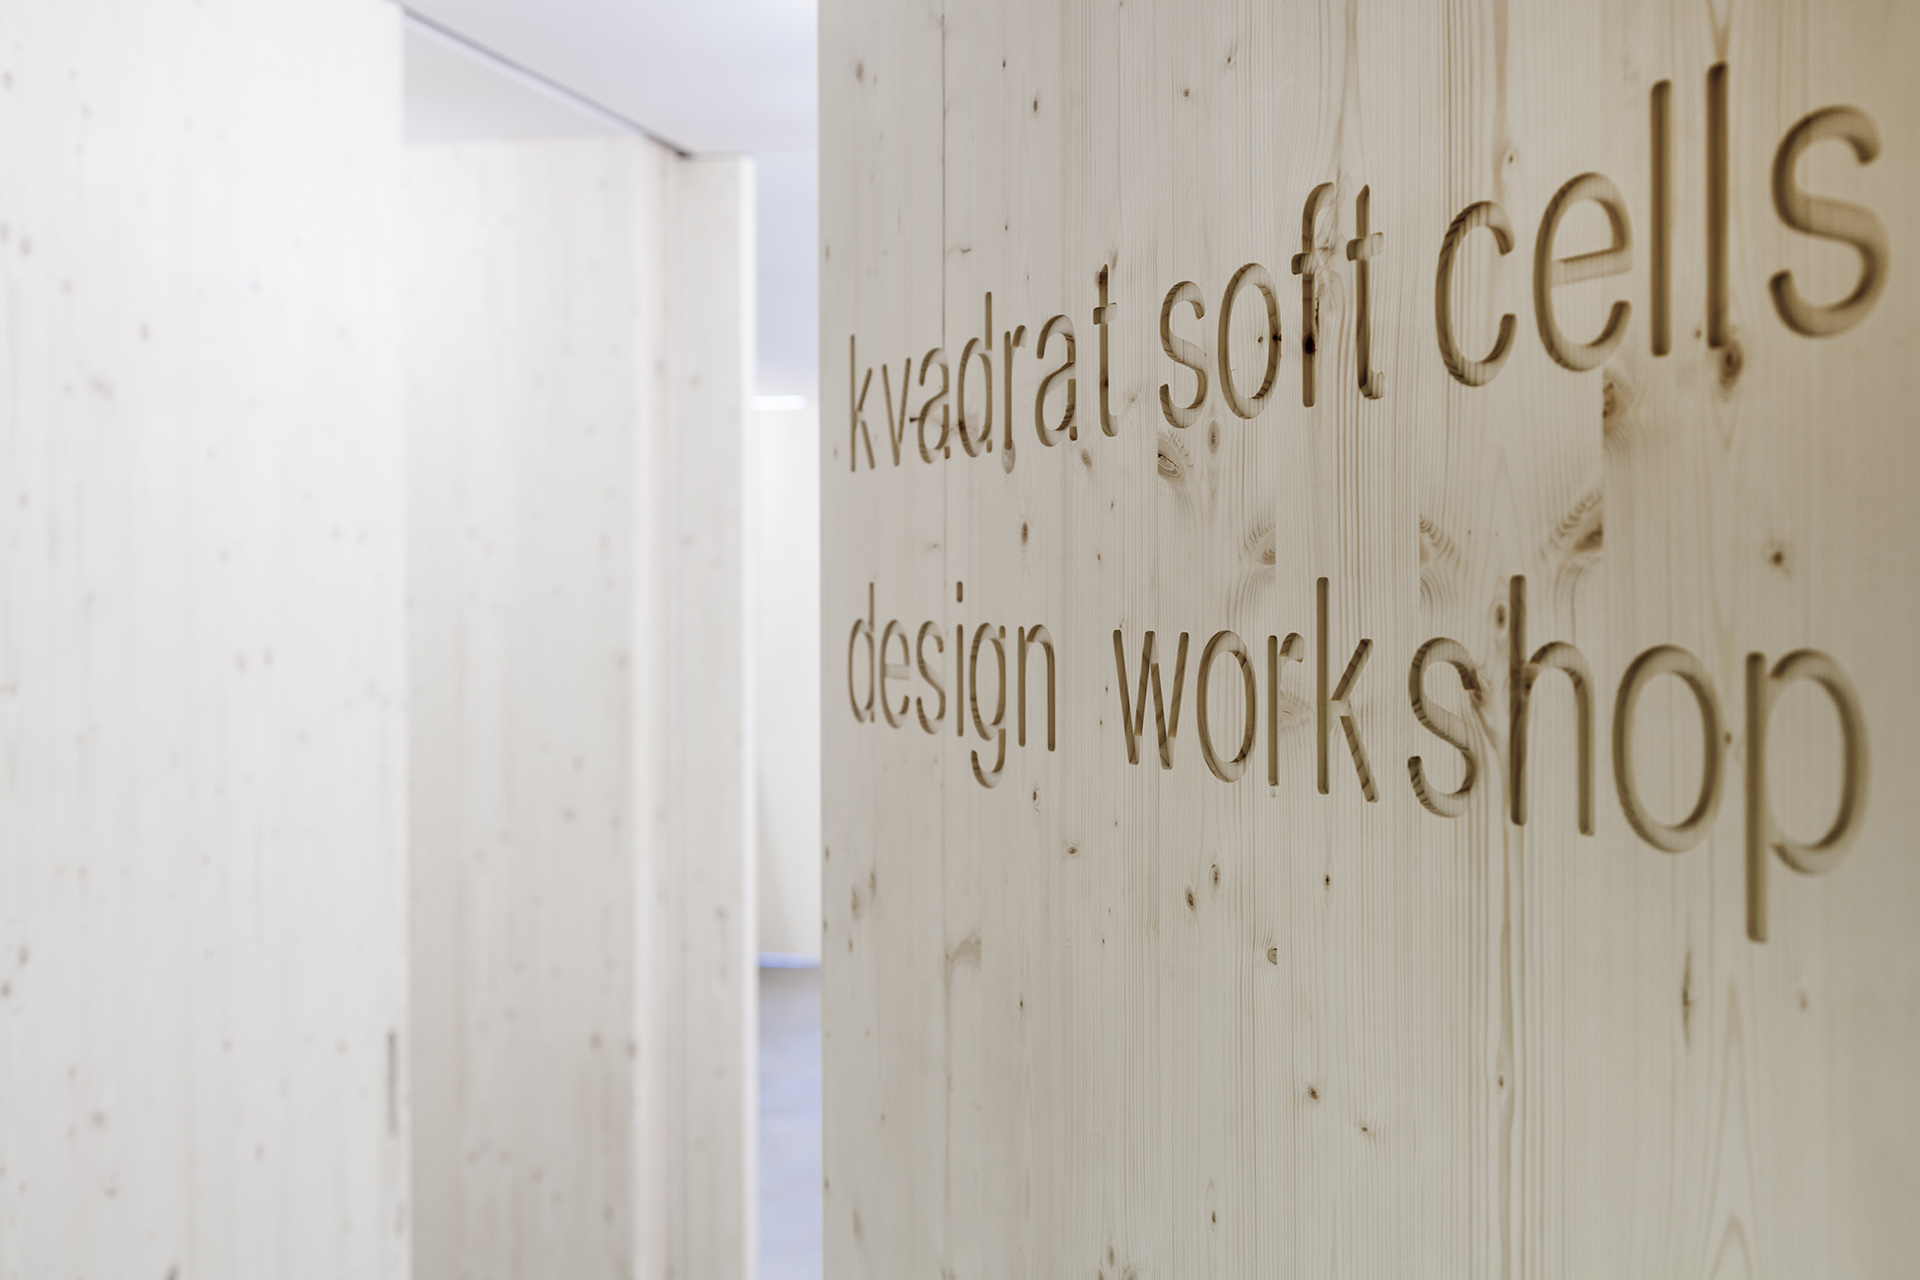 kvadrat soft cells design workshop | copenhagen  | architecture caruso st john